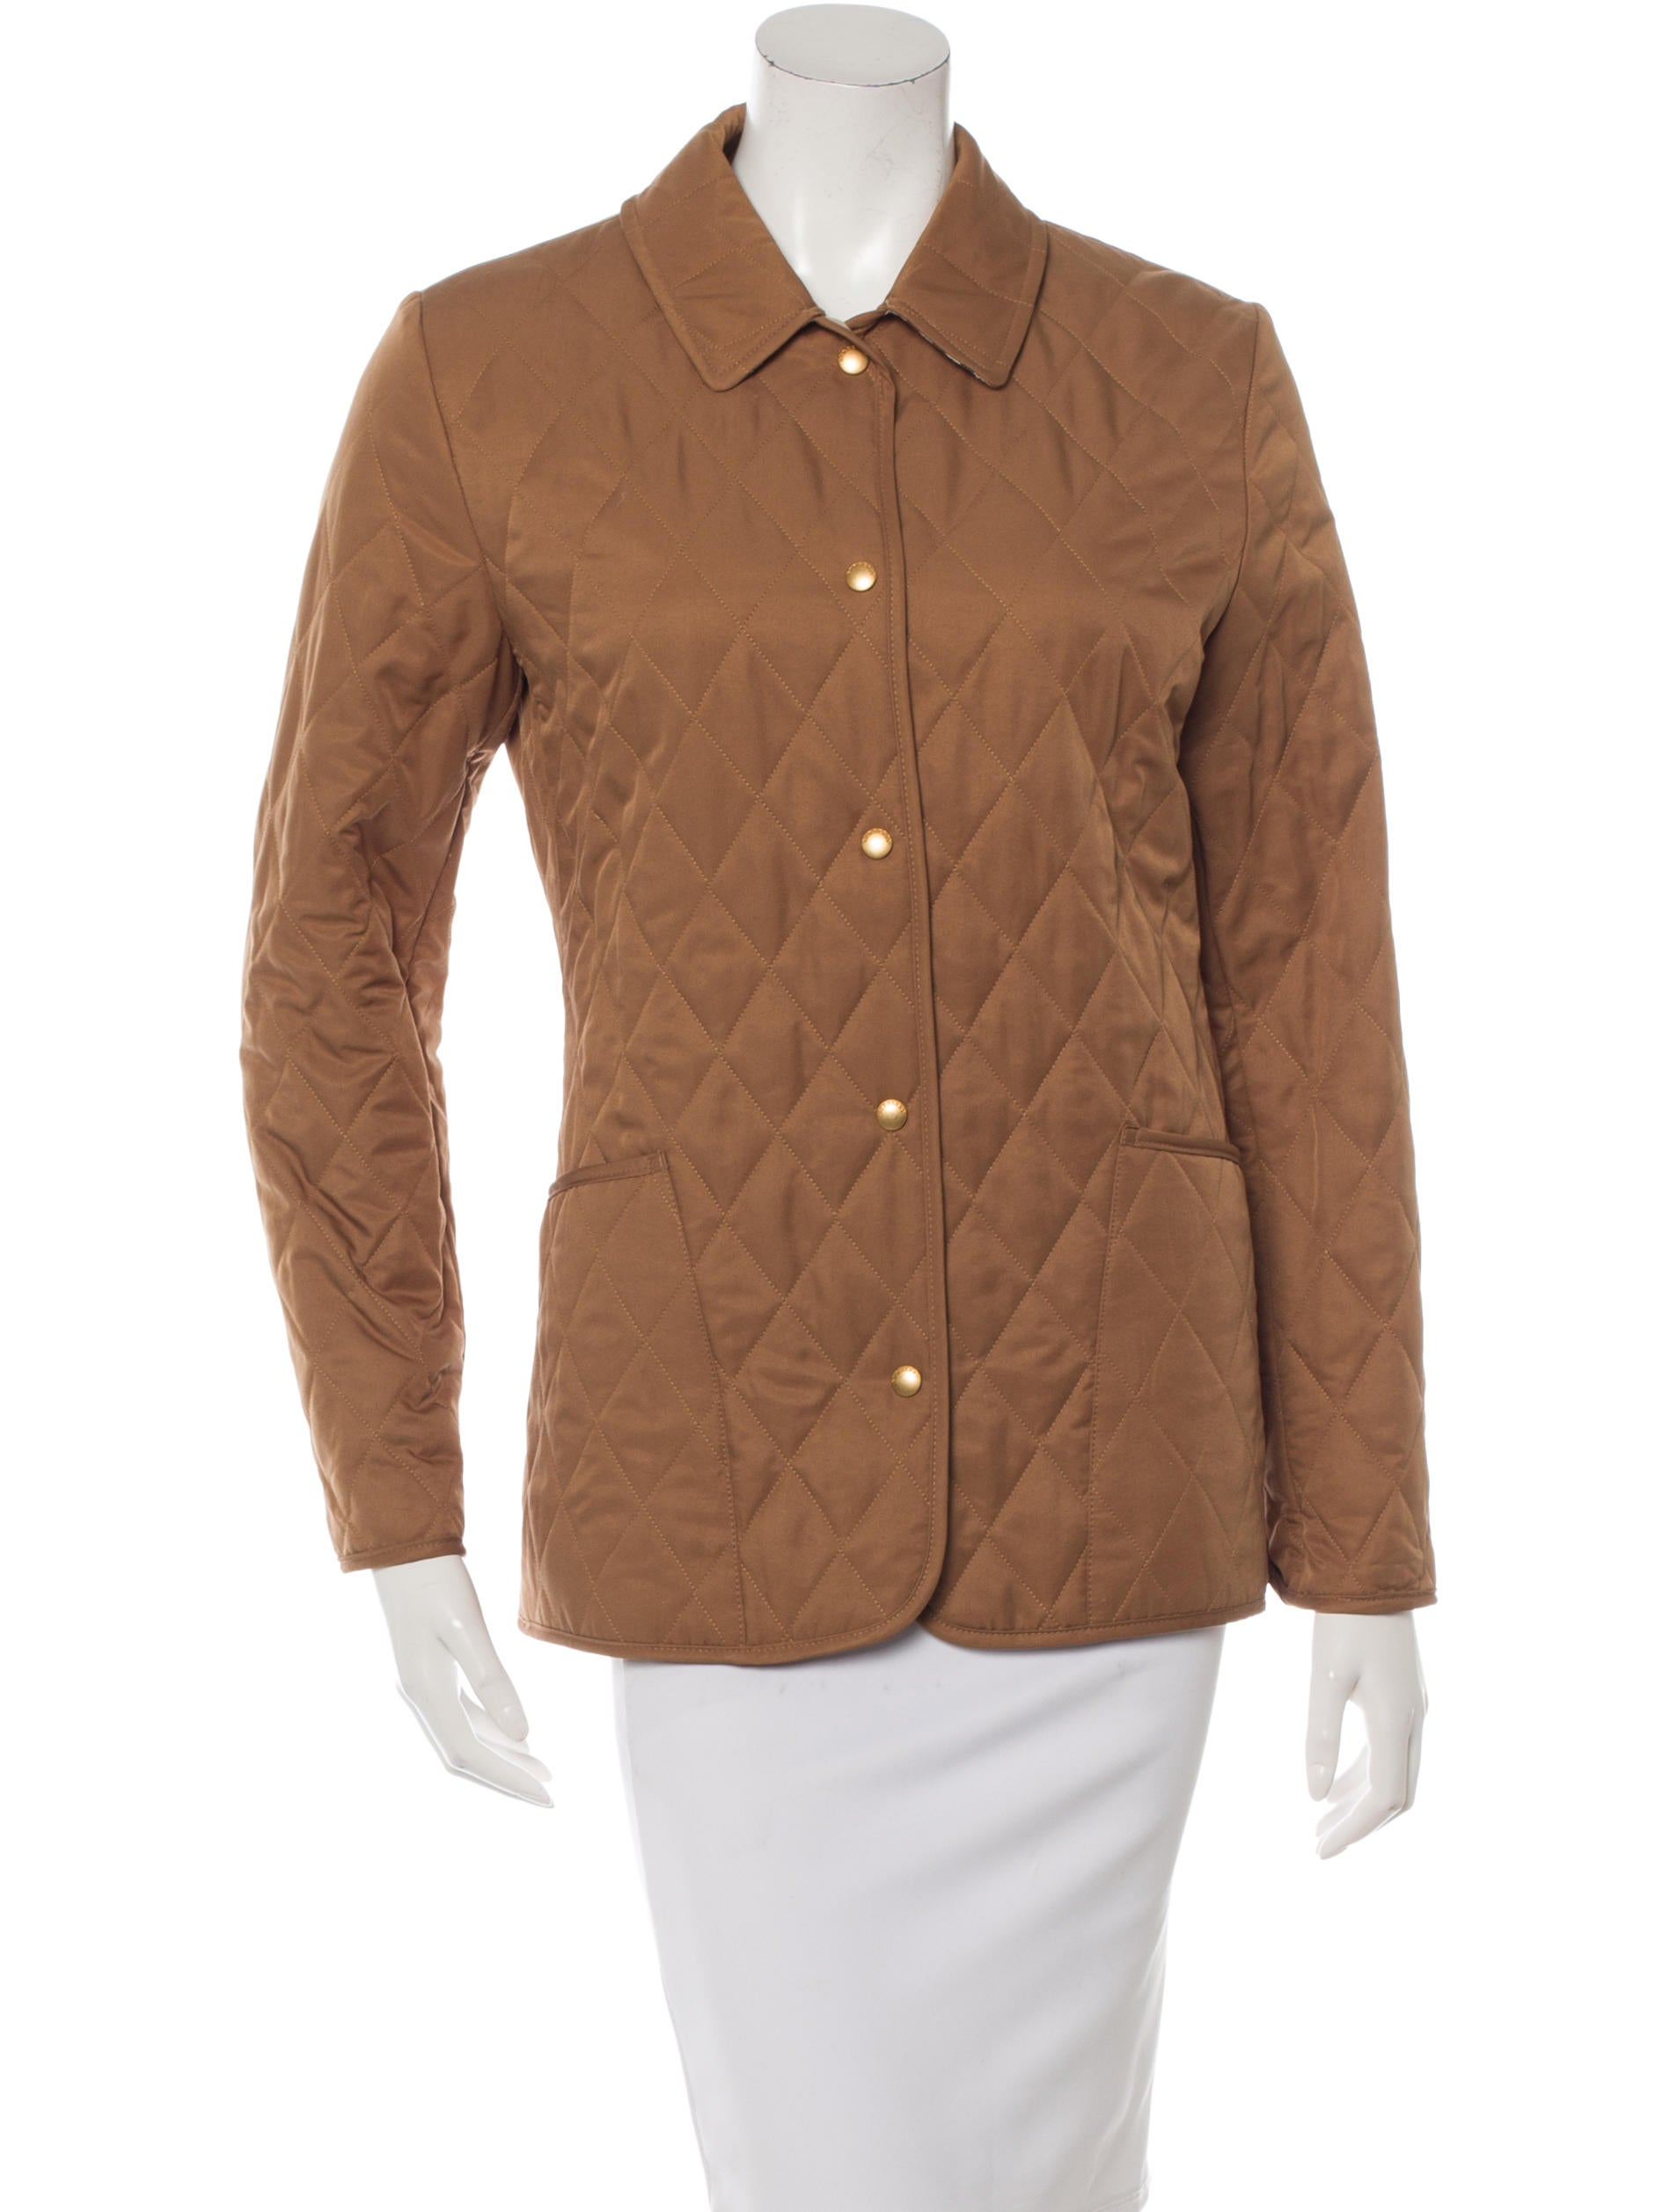 Shop Old Navy's Lightweight Quilted Jacket for Women: Rib-knit collar.,Long sleeves, with rib-knit cuffs.,Full-length zipper from hem to chin.,Slant welt pockets at front.,Smooth, lightweight quilted shell.